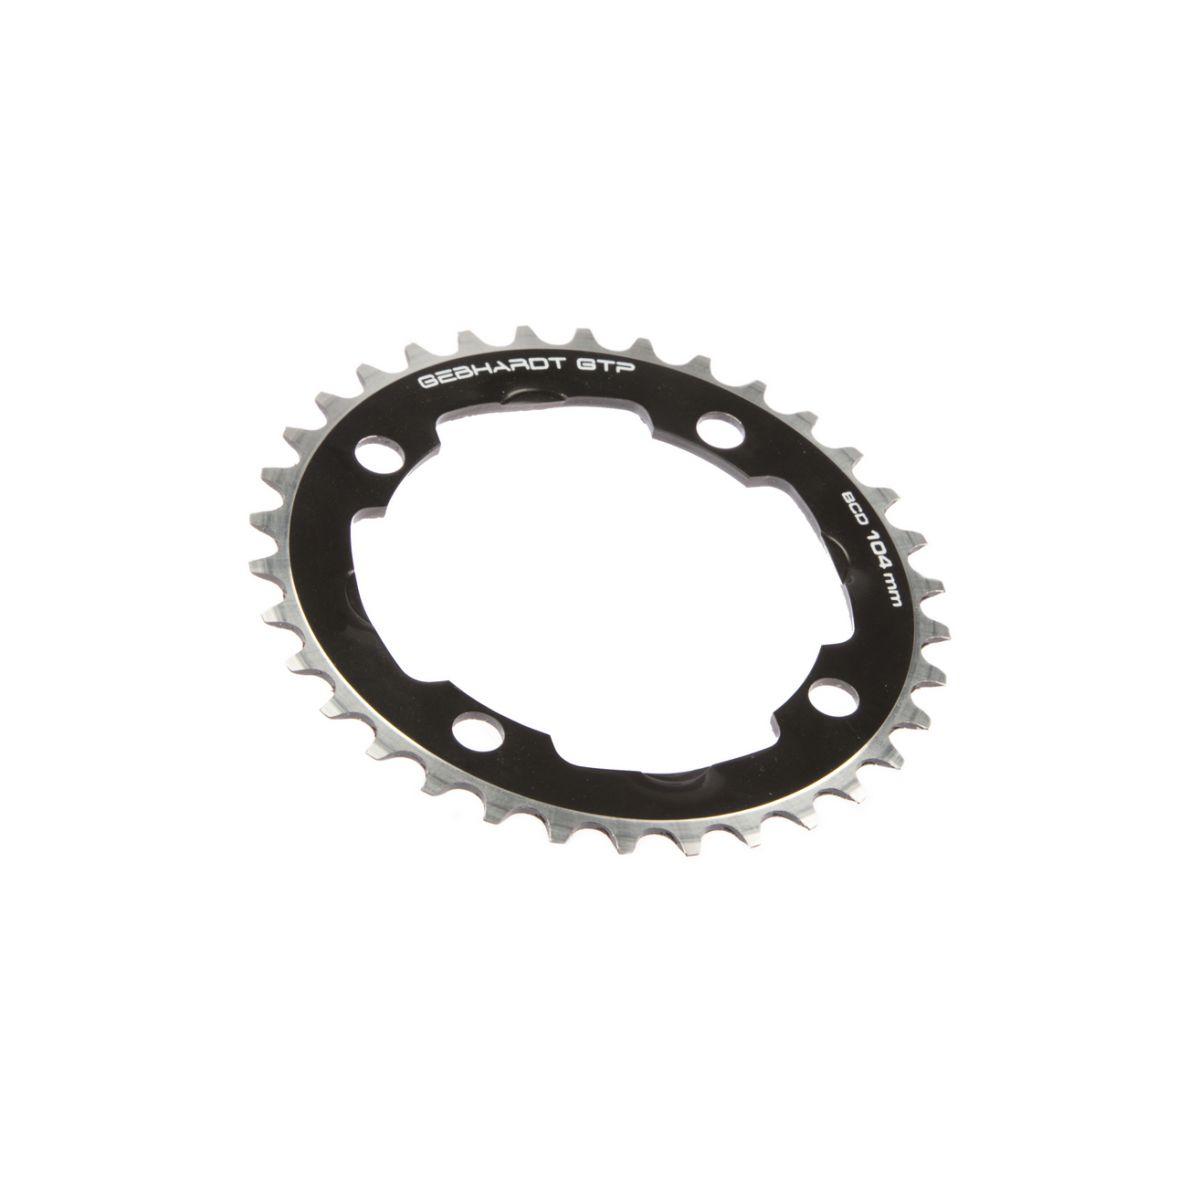 gebhardt chainring classic bcd 104 mm 4hole 38t black